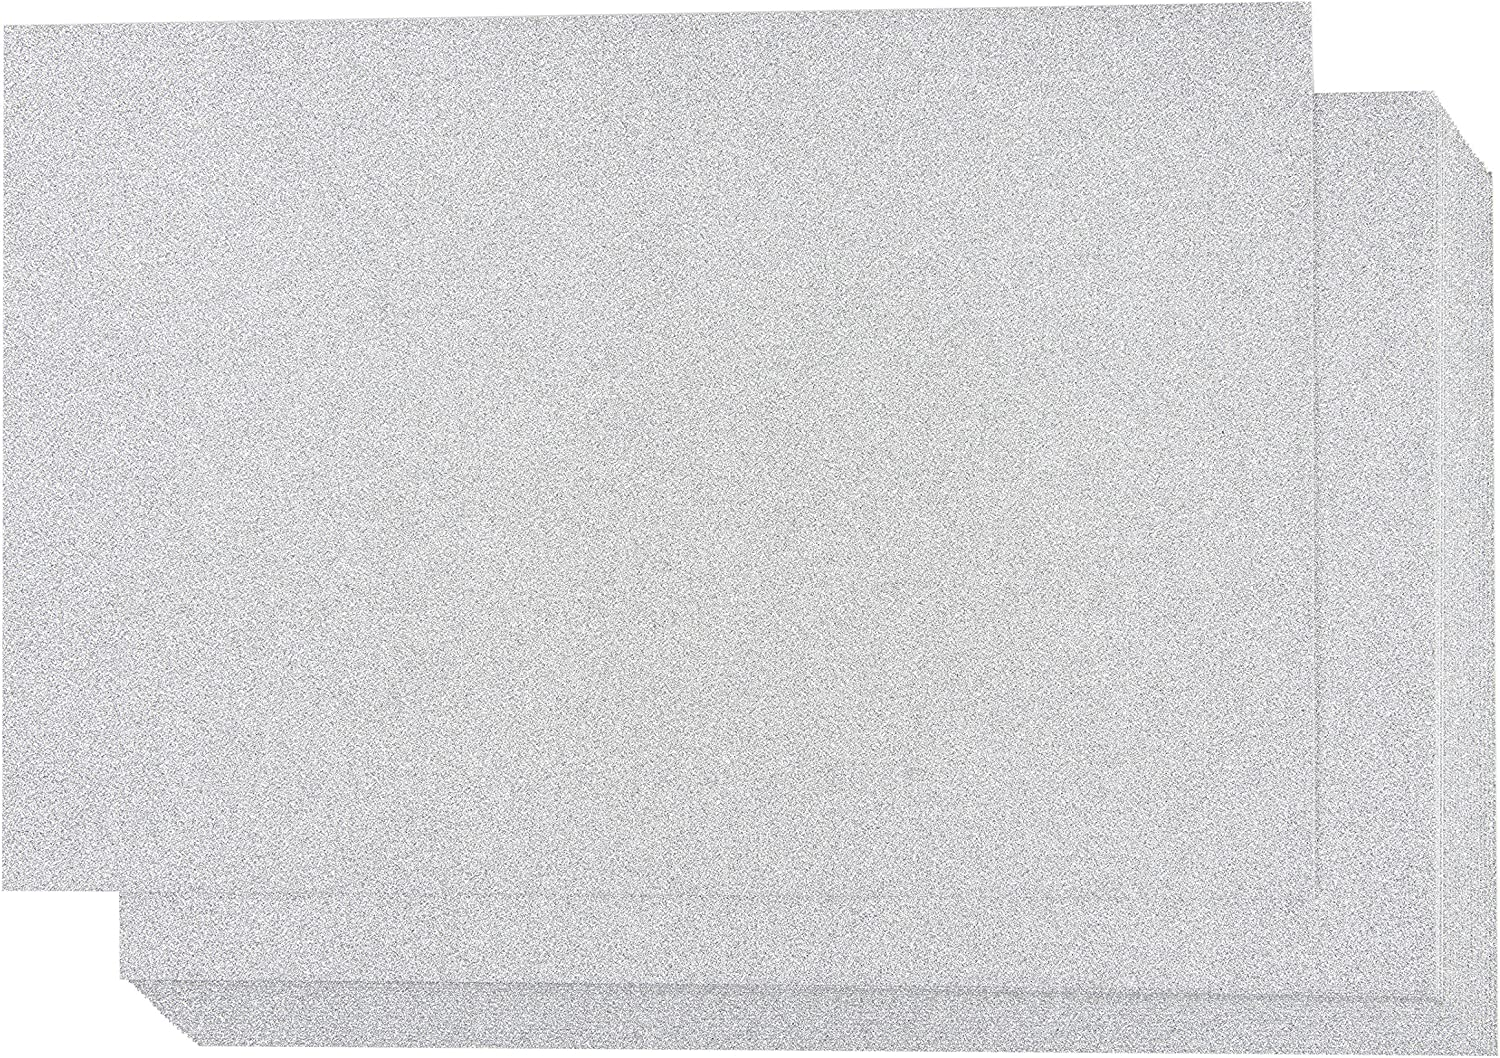 Light Blue 20.3 x 30.5 cm 24 Sheets Best Paper Greetings Glitter Cardstock Paper - Arts and Crafts Supplies